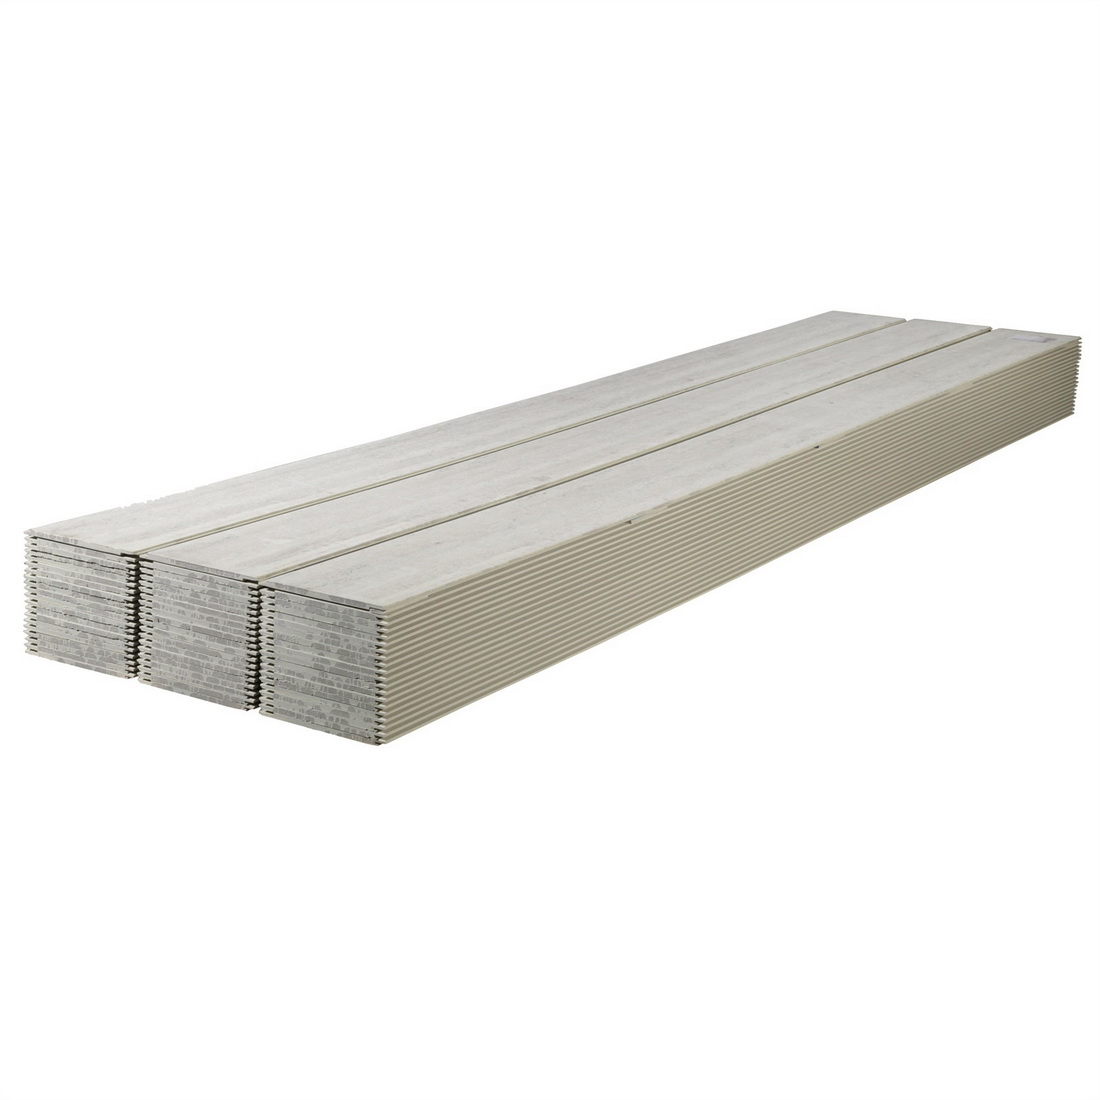 Stria Cladding  4200 x 405 x 14mm